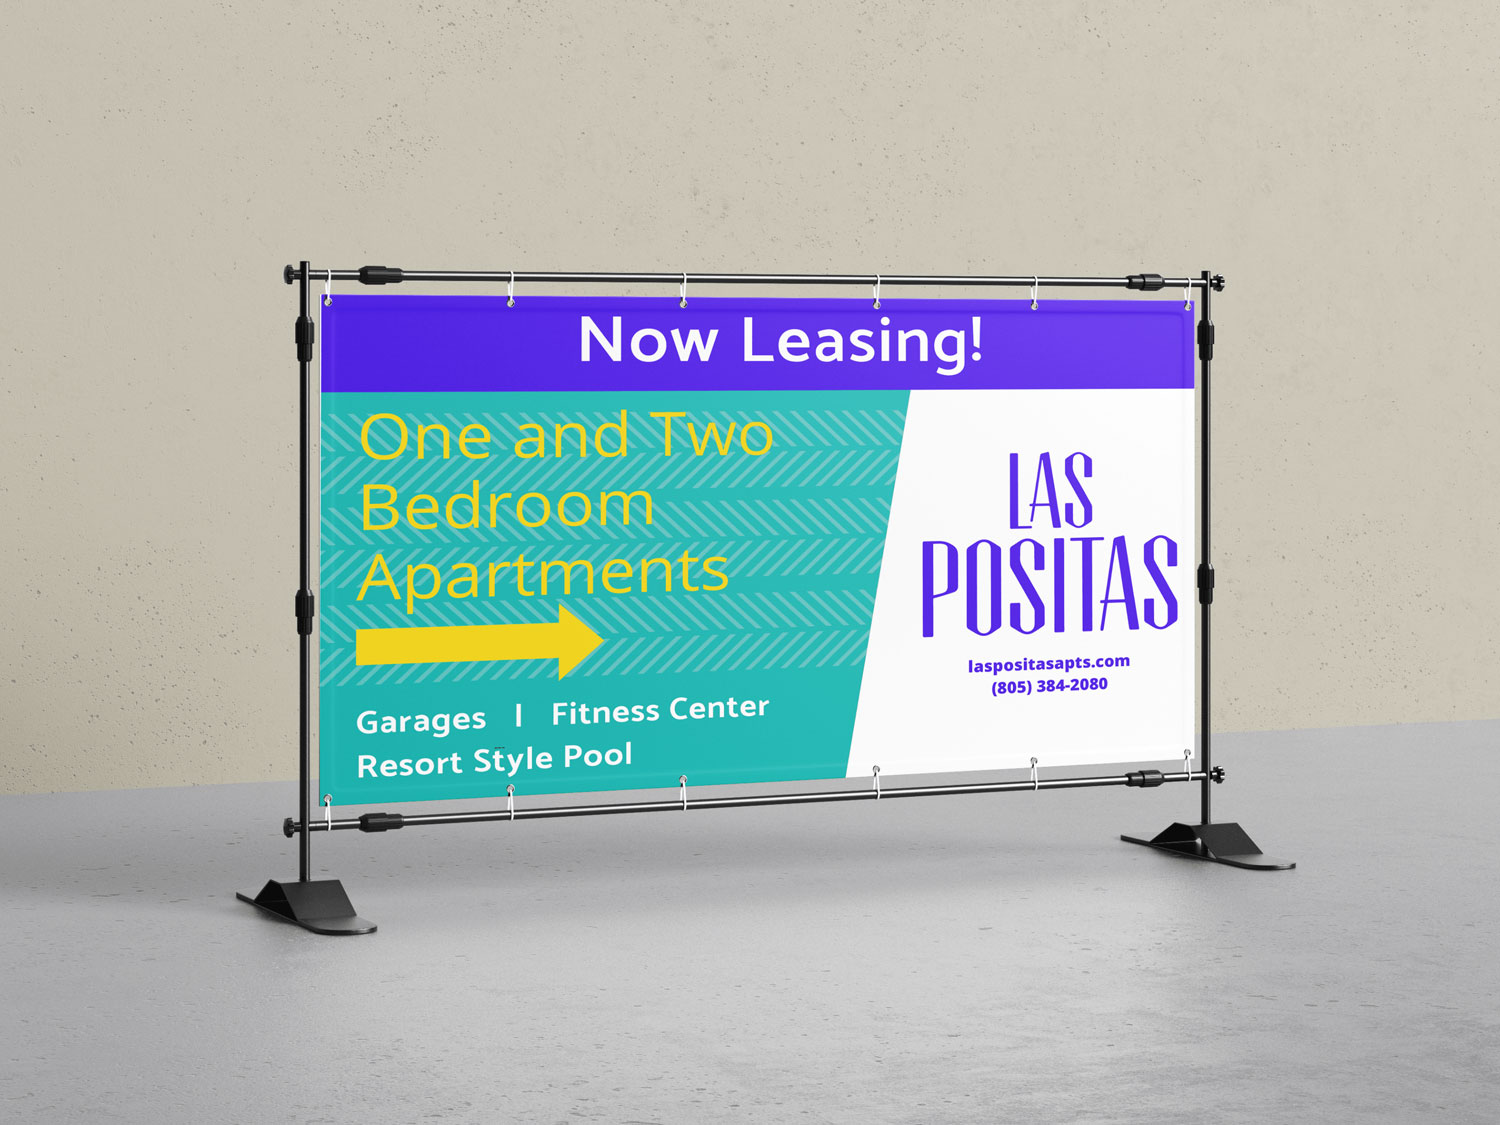 las-positas-marketing-collateral-signage-uncomn-projects